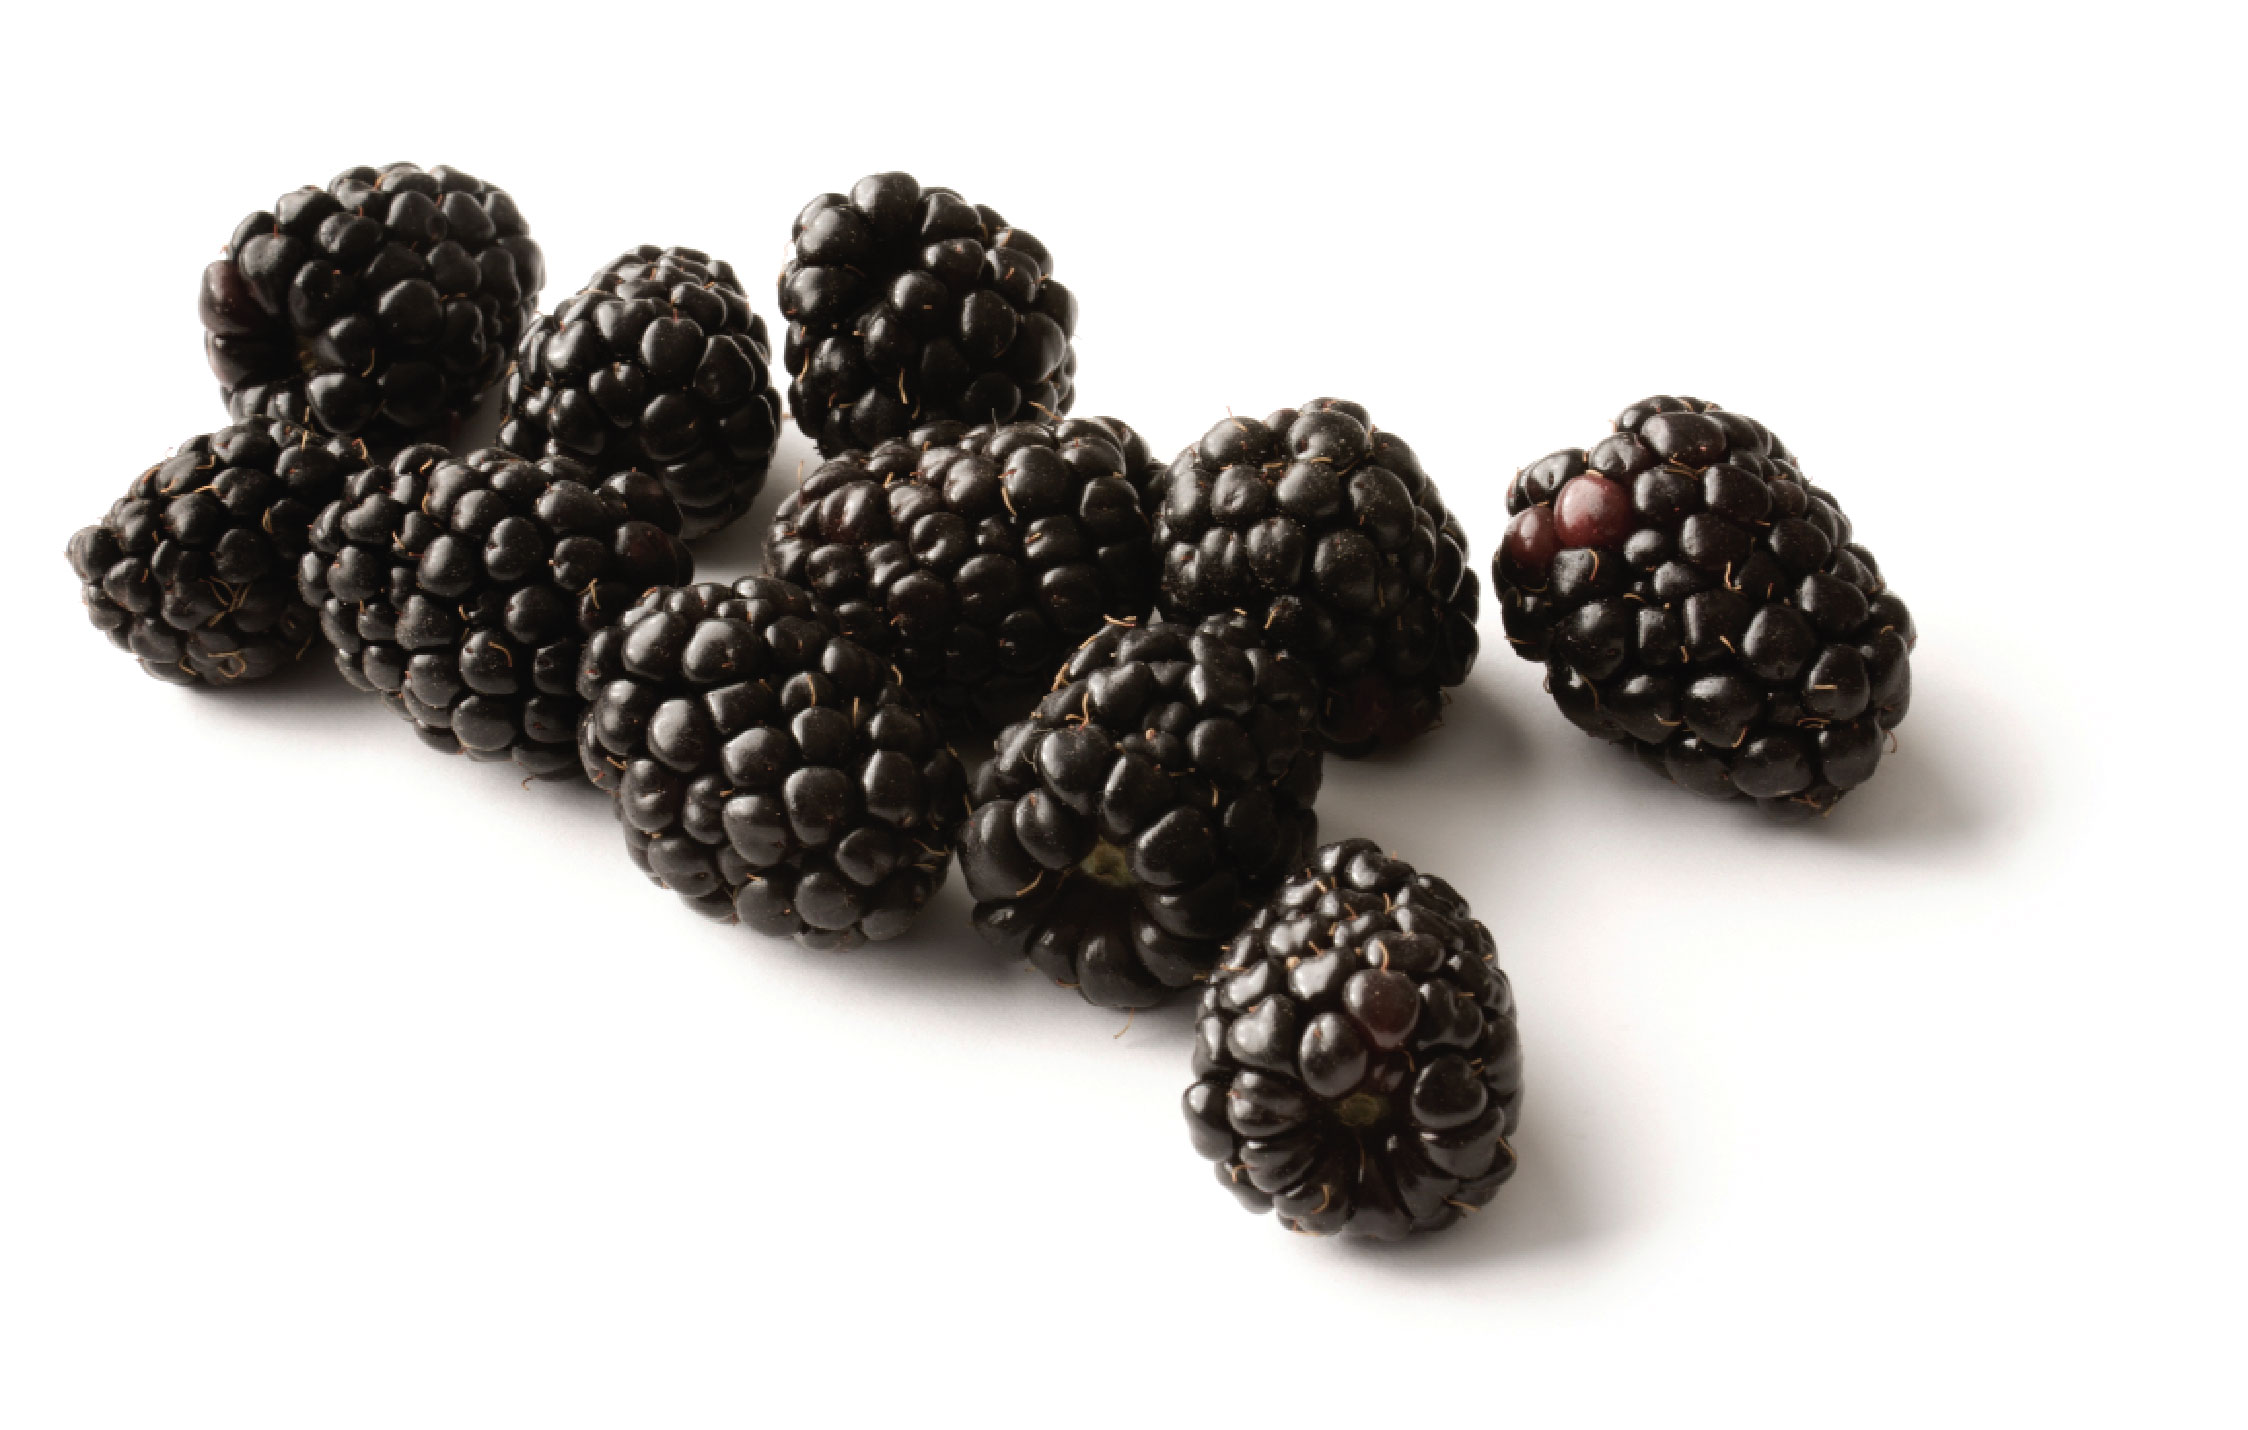 Black Raspberry | The Inquisitive Eater